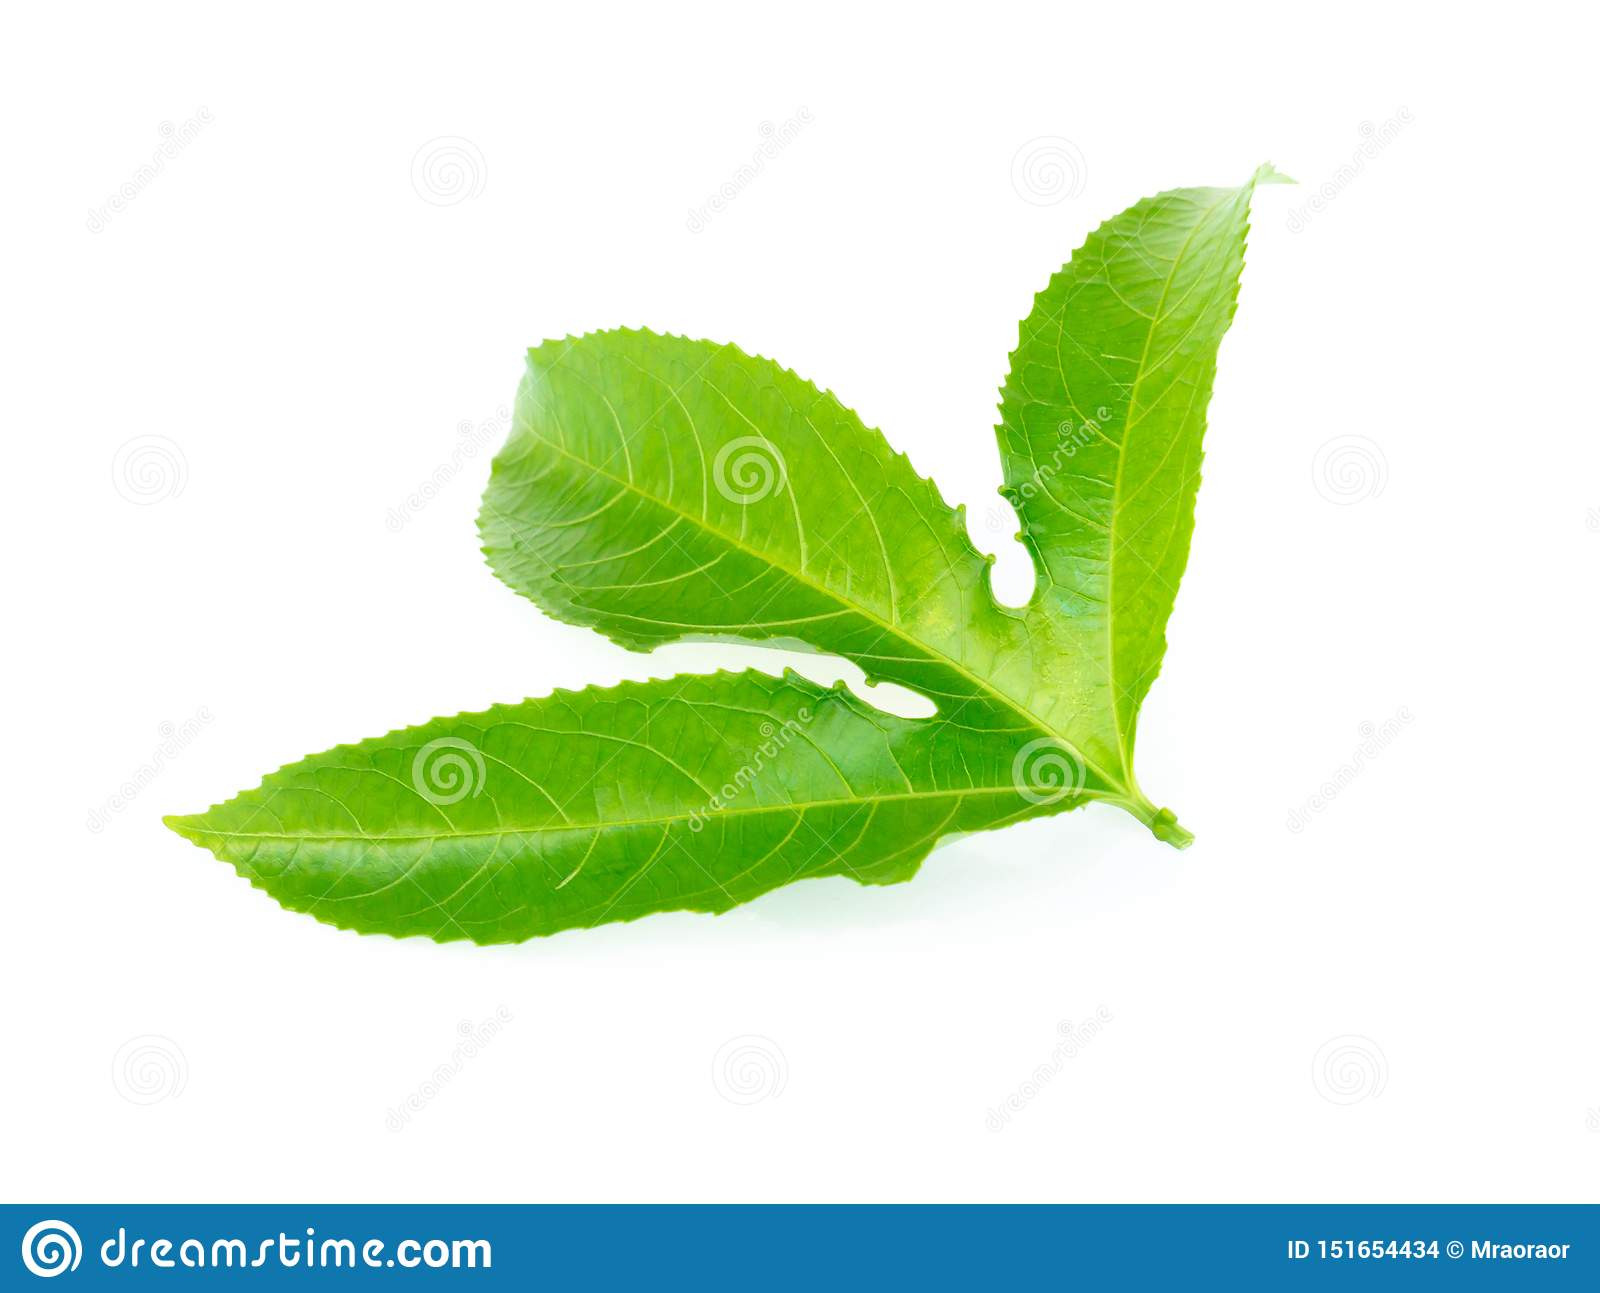 Green passion fruit leaf isolated on white background